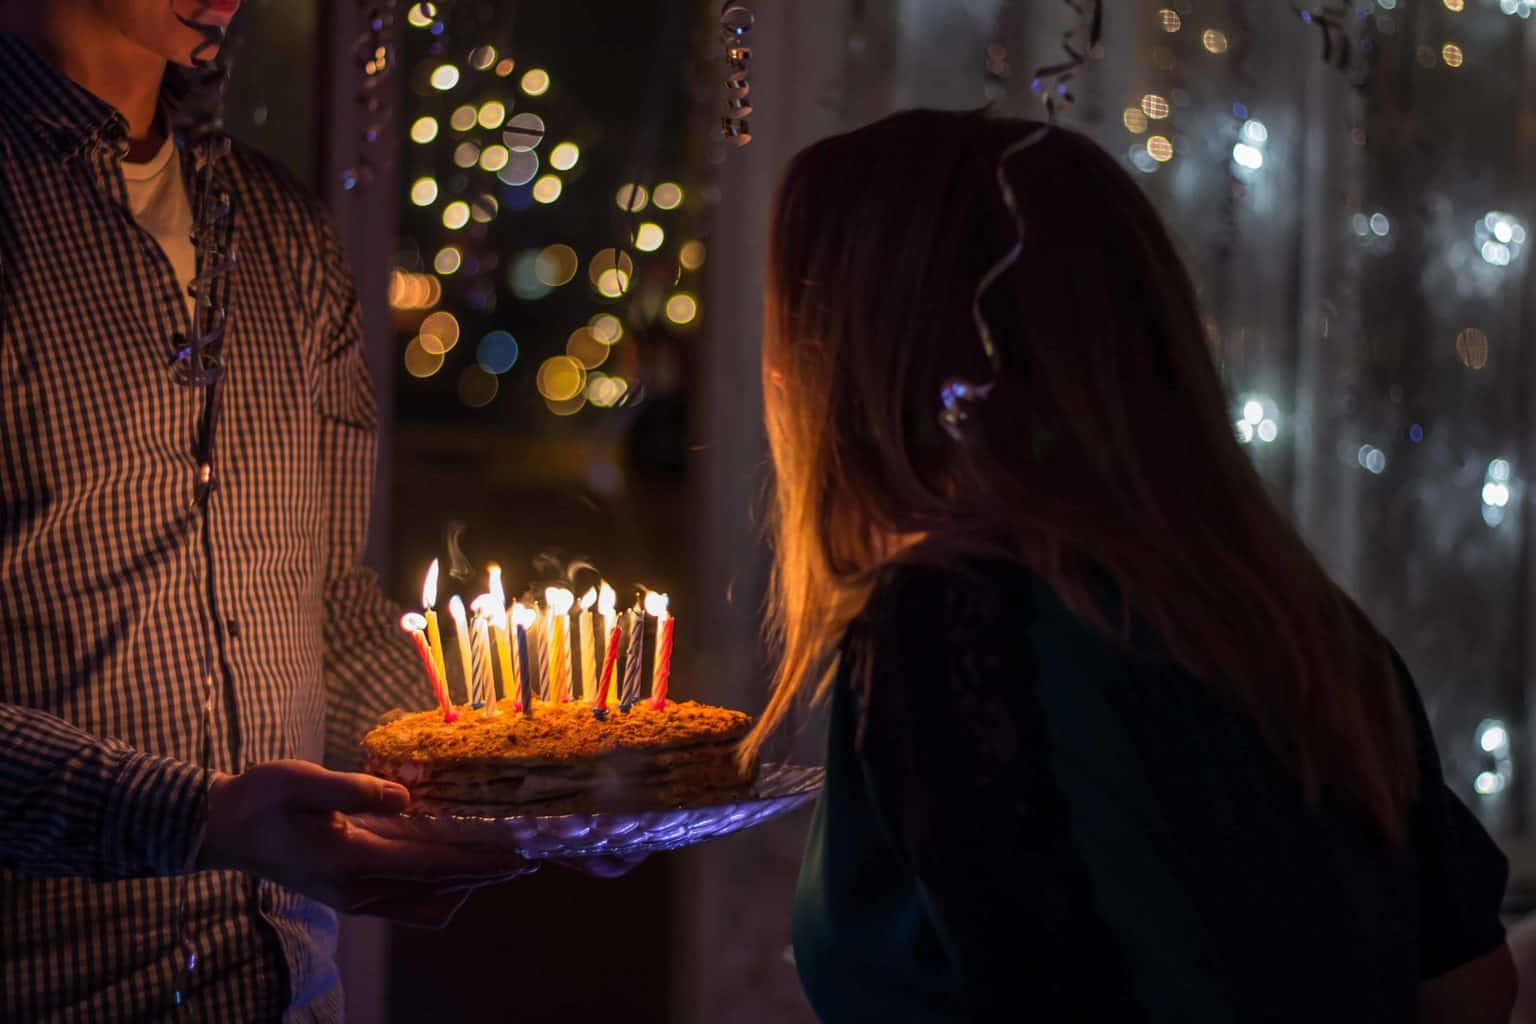 A woman looking at cake with lit candles